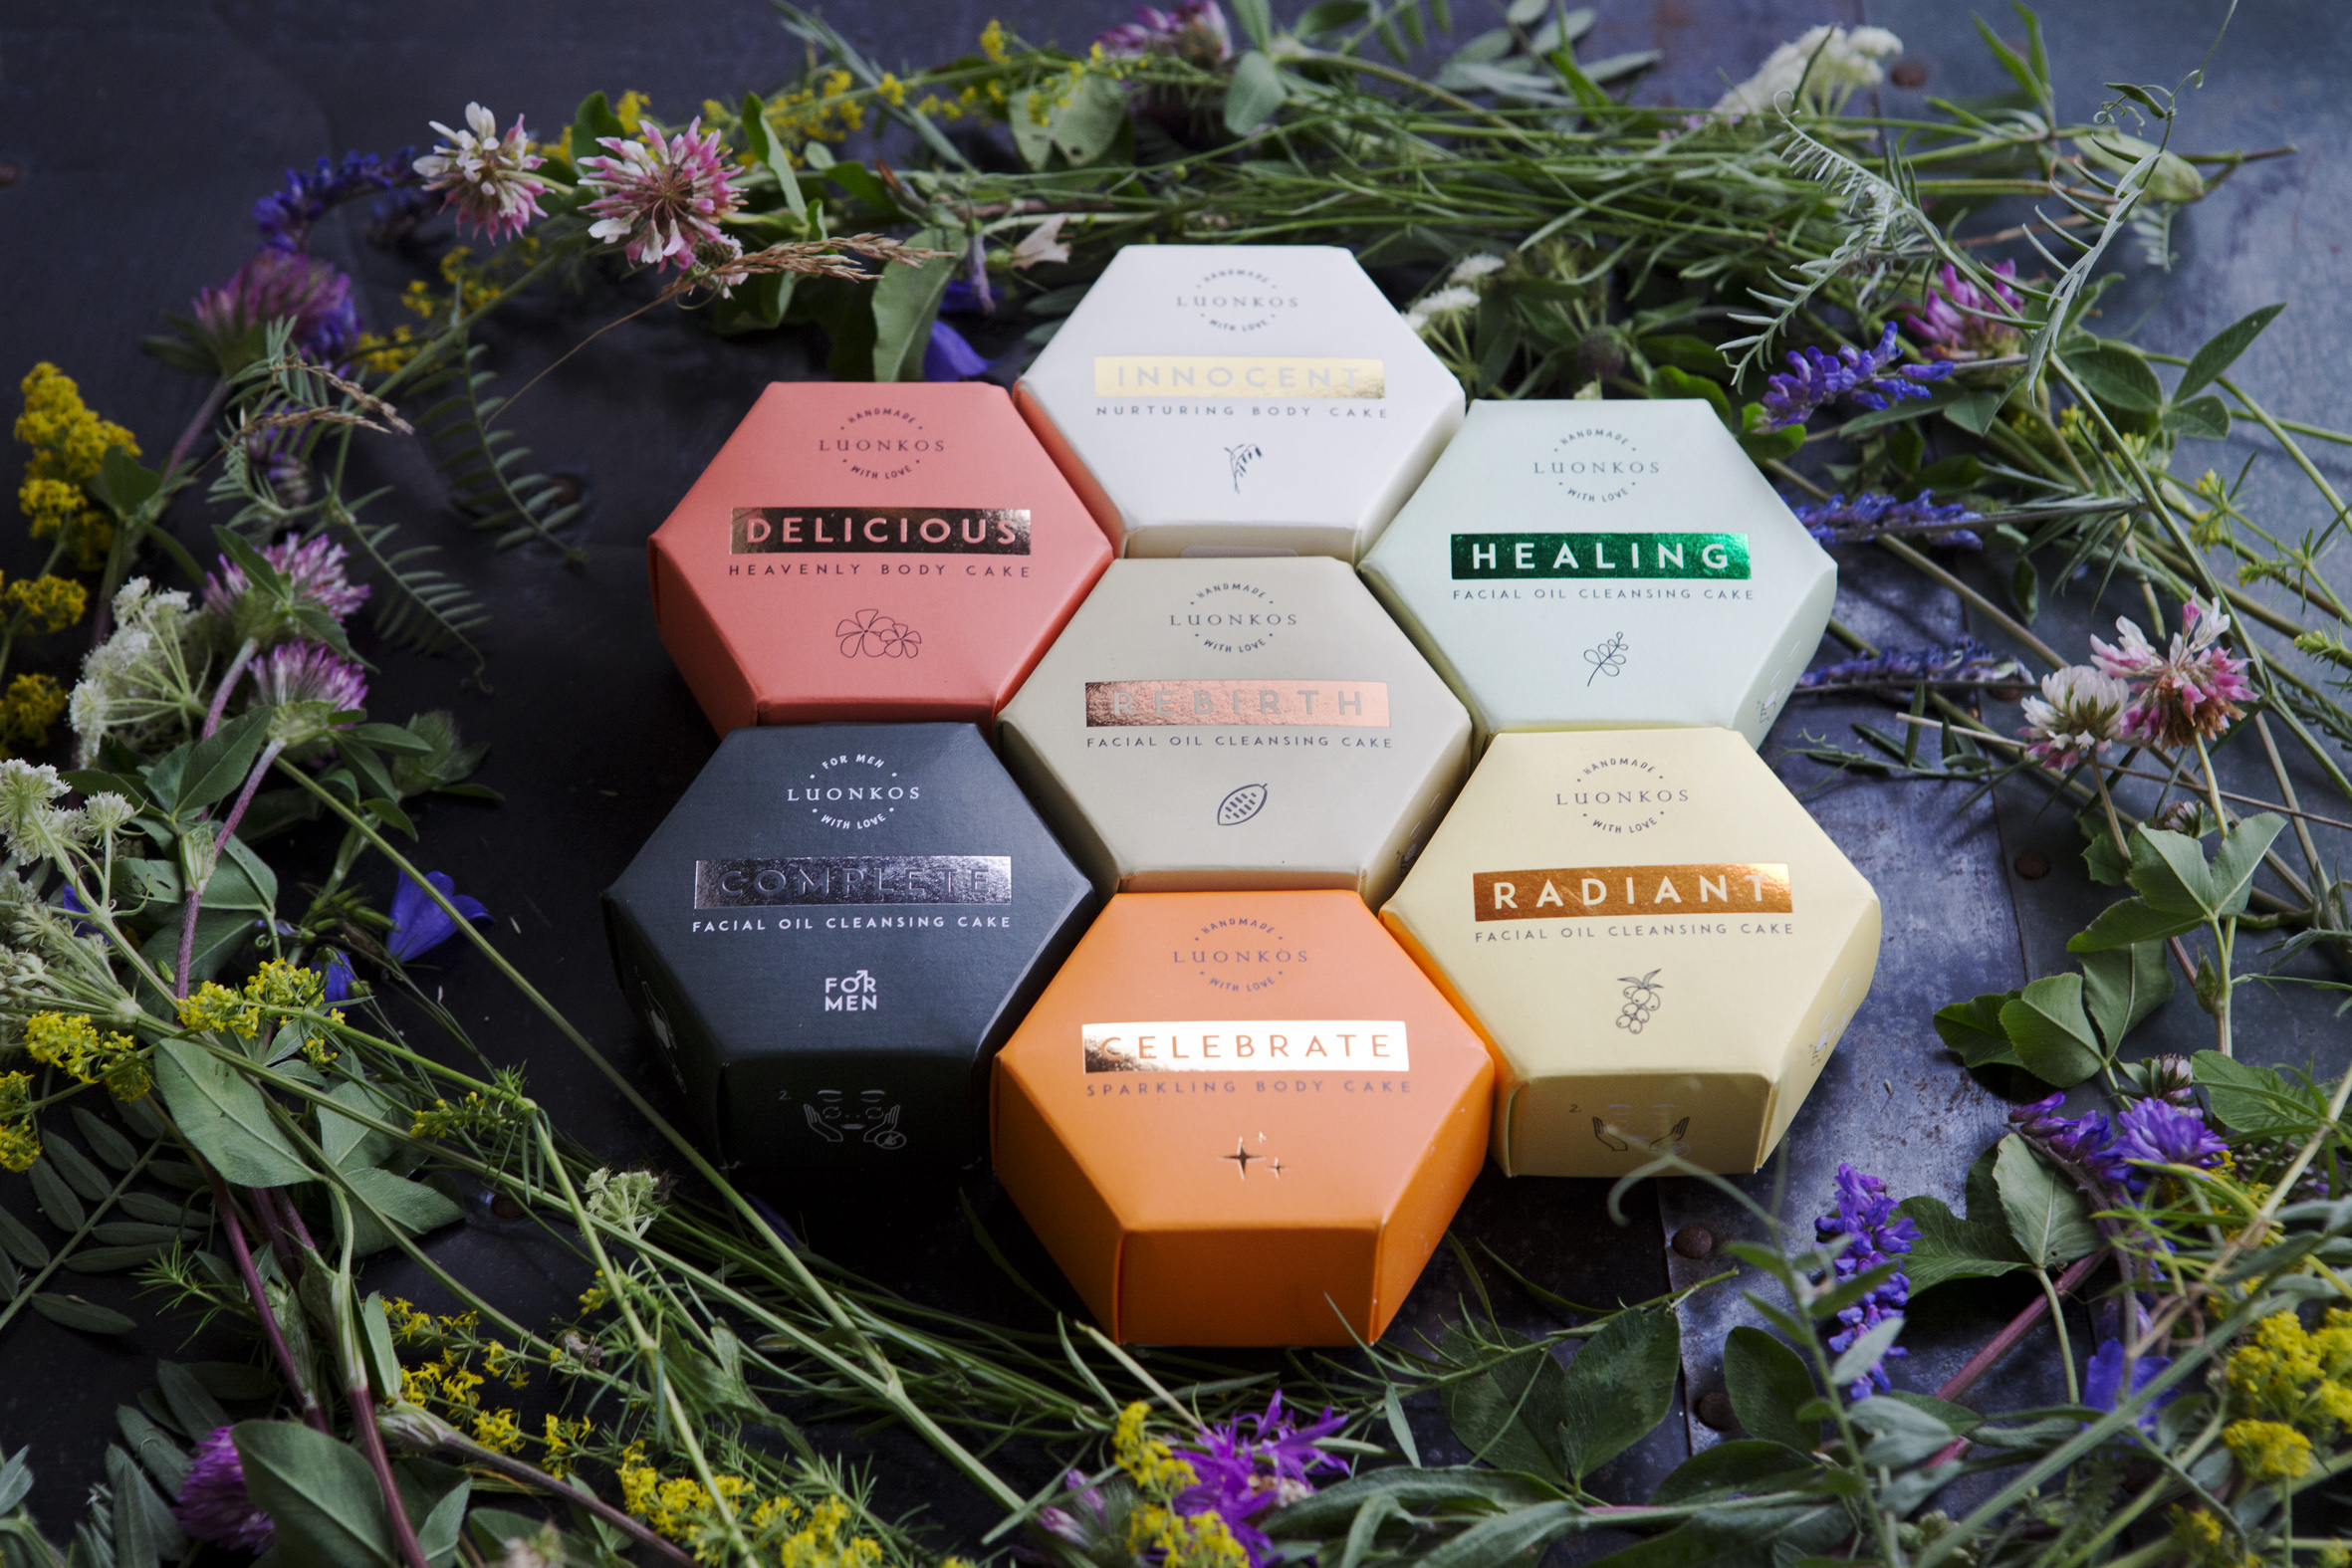 luonkos-facial-oil-cleansing-cakes-healing-rebirth-radiant-complete-skincare-innovation-nordic-natural-beauty-awards-winner